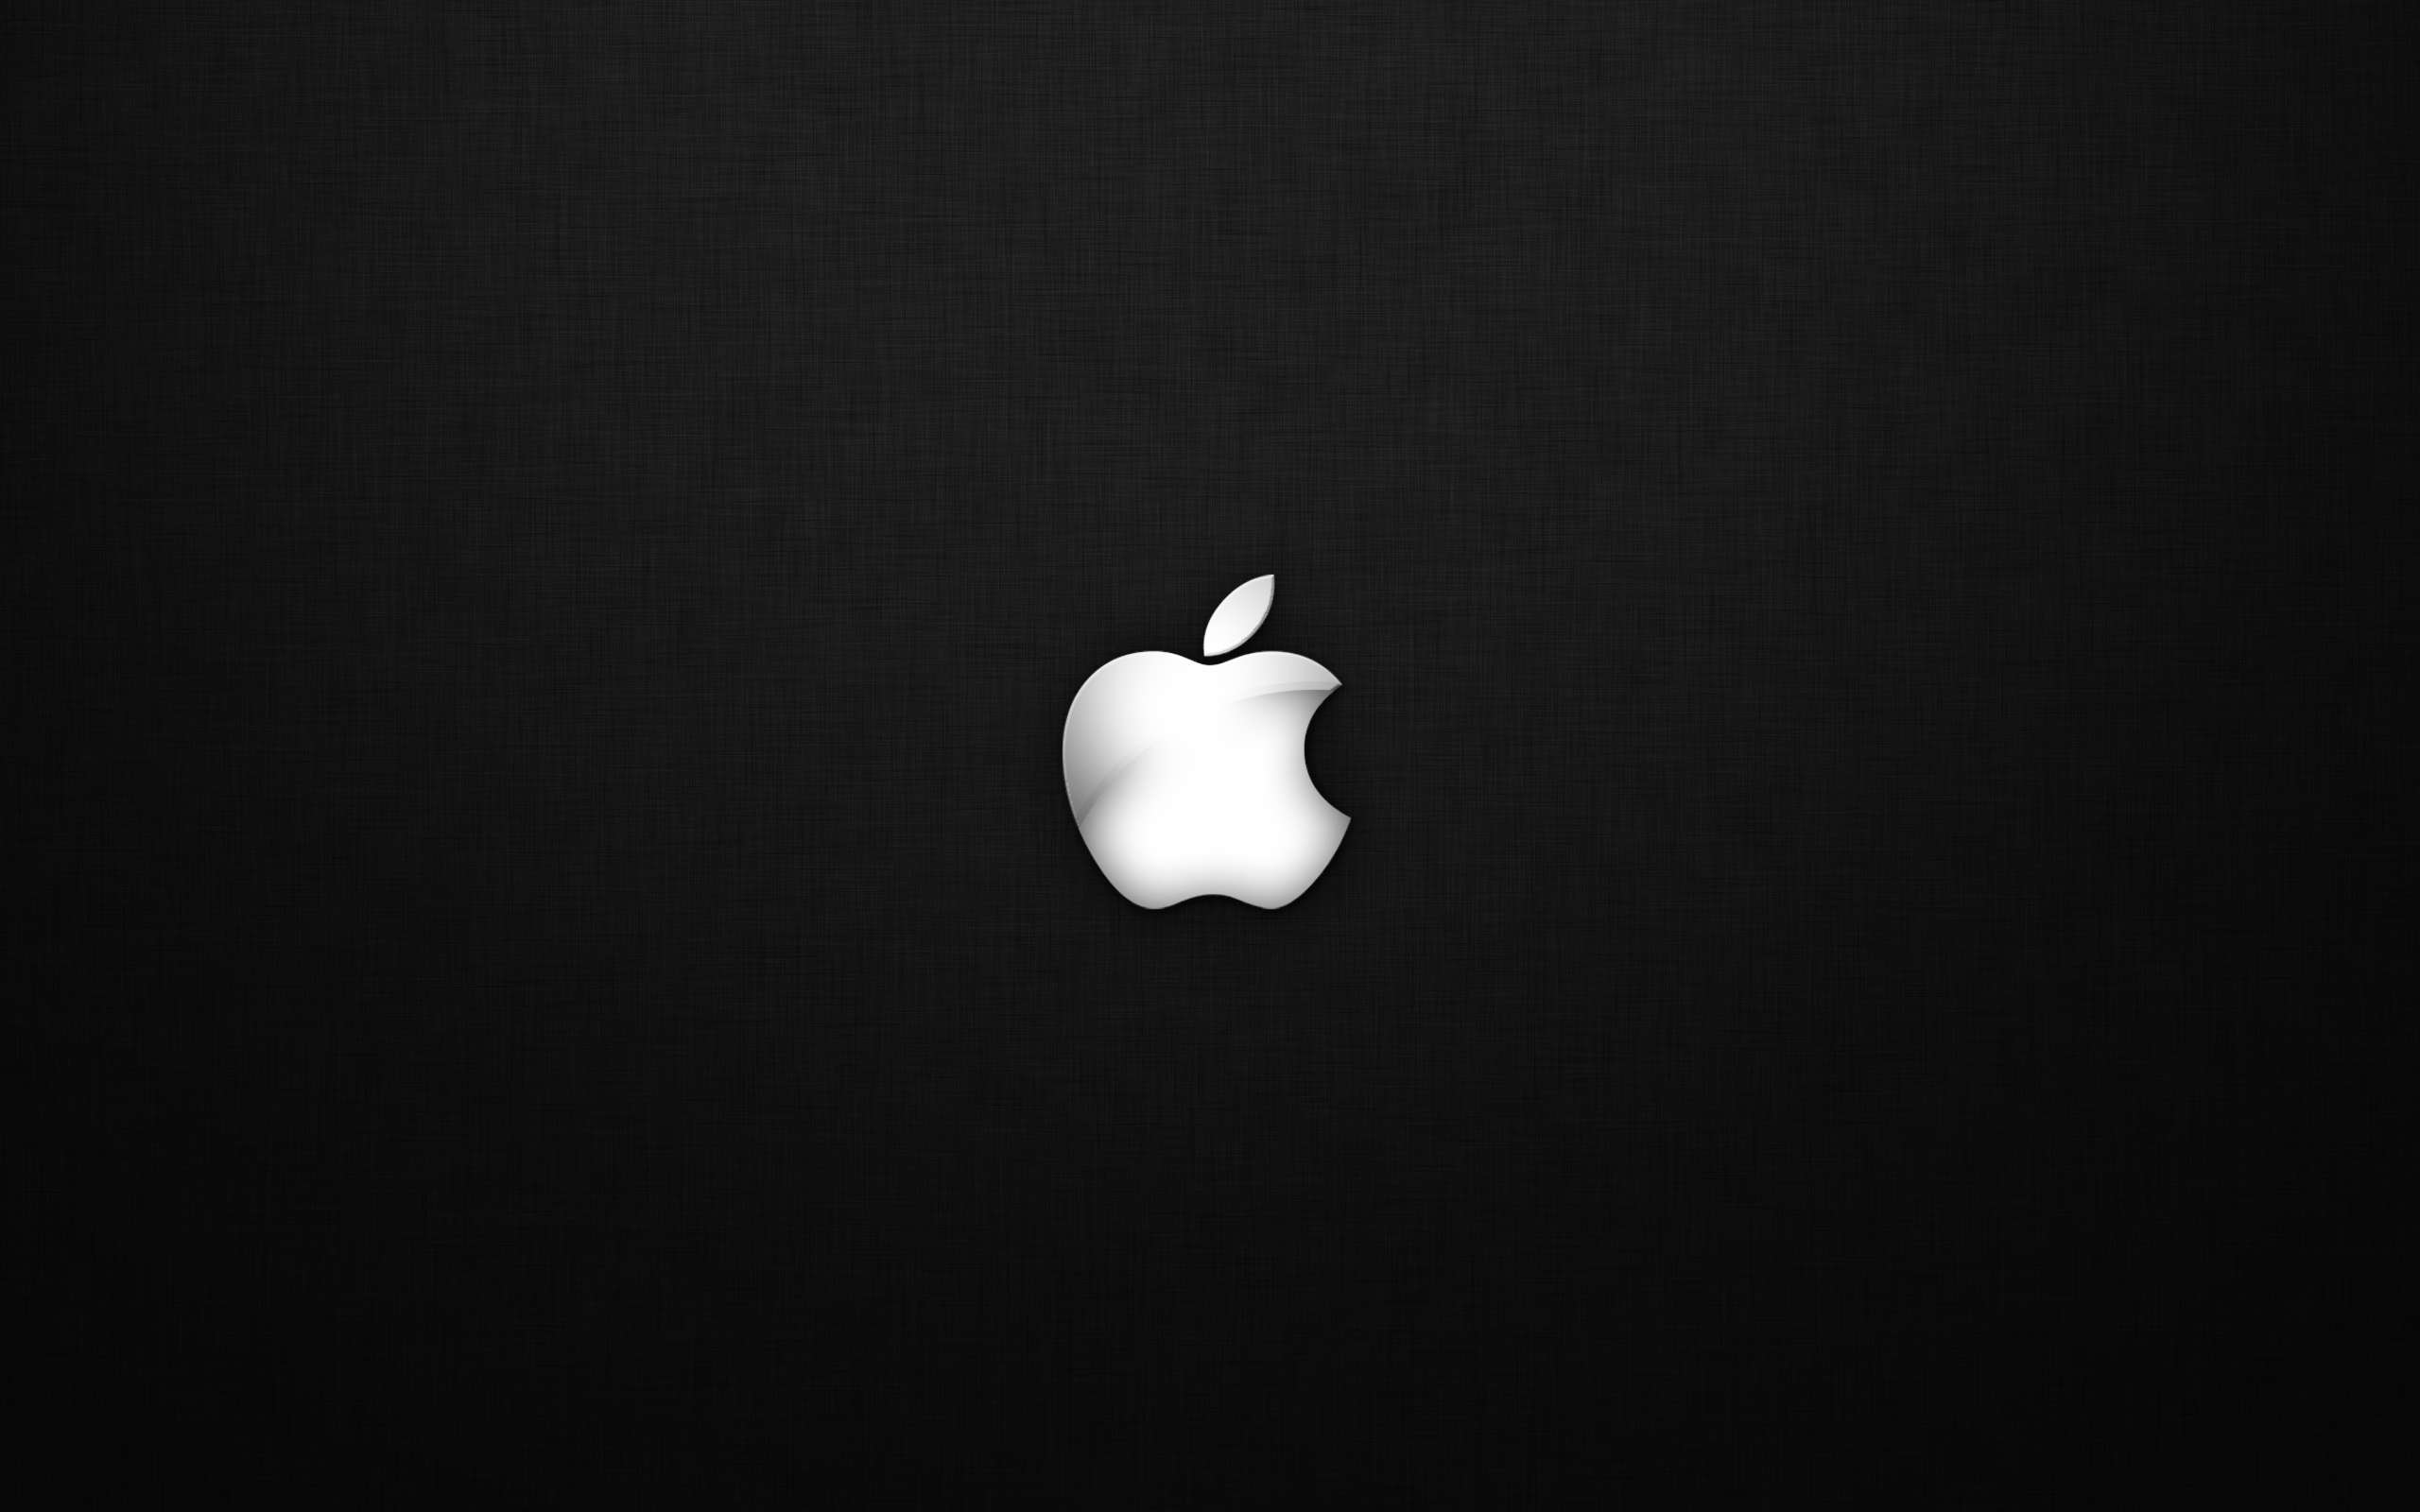 Apple Computer Wallpaper 033